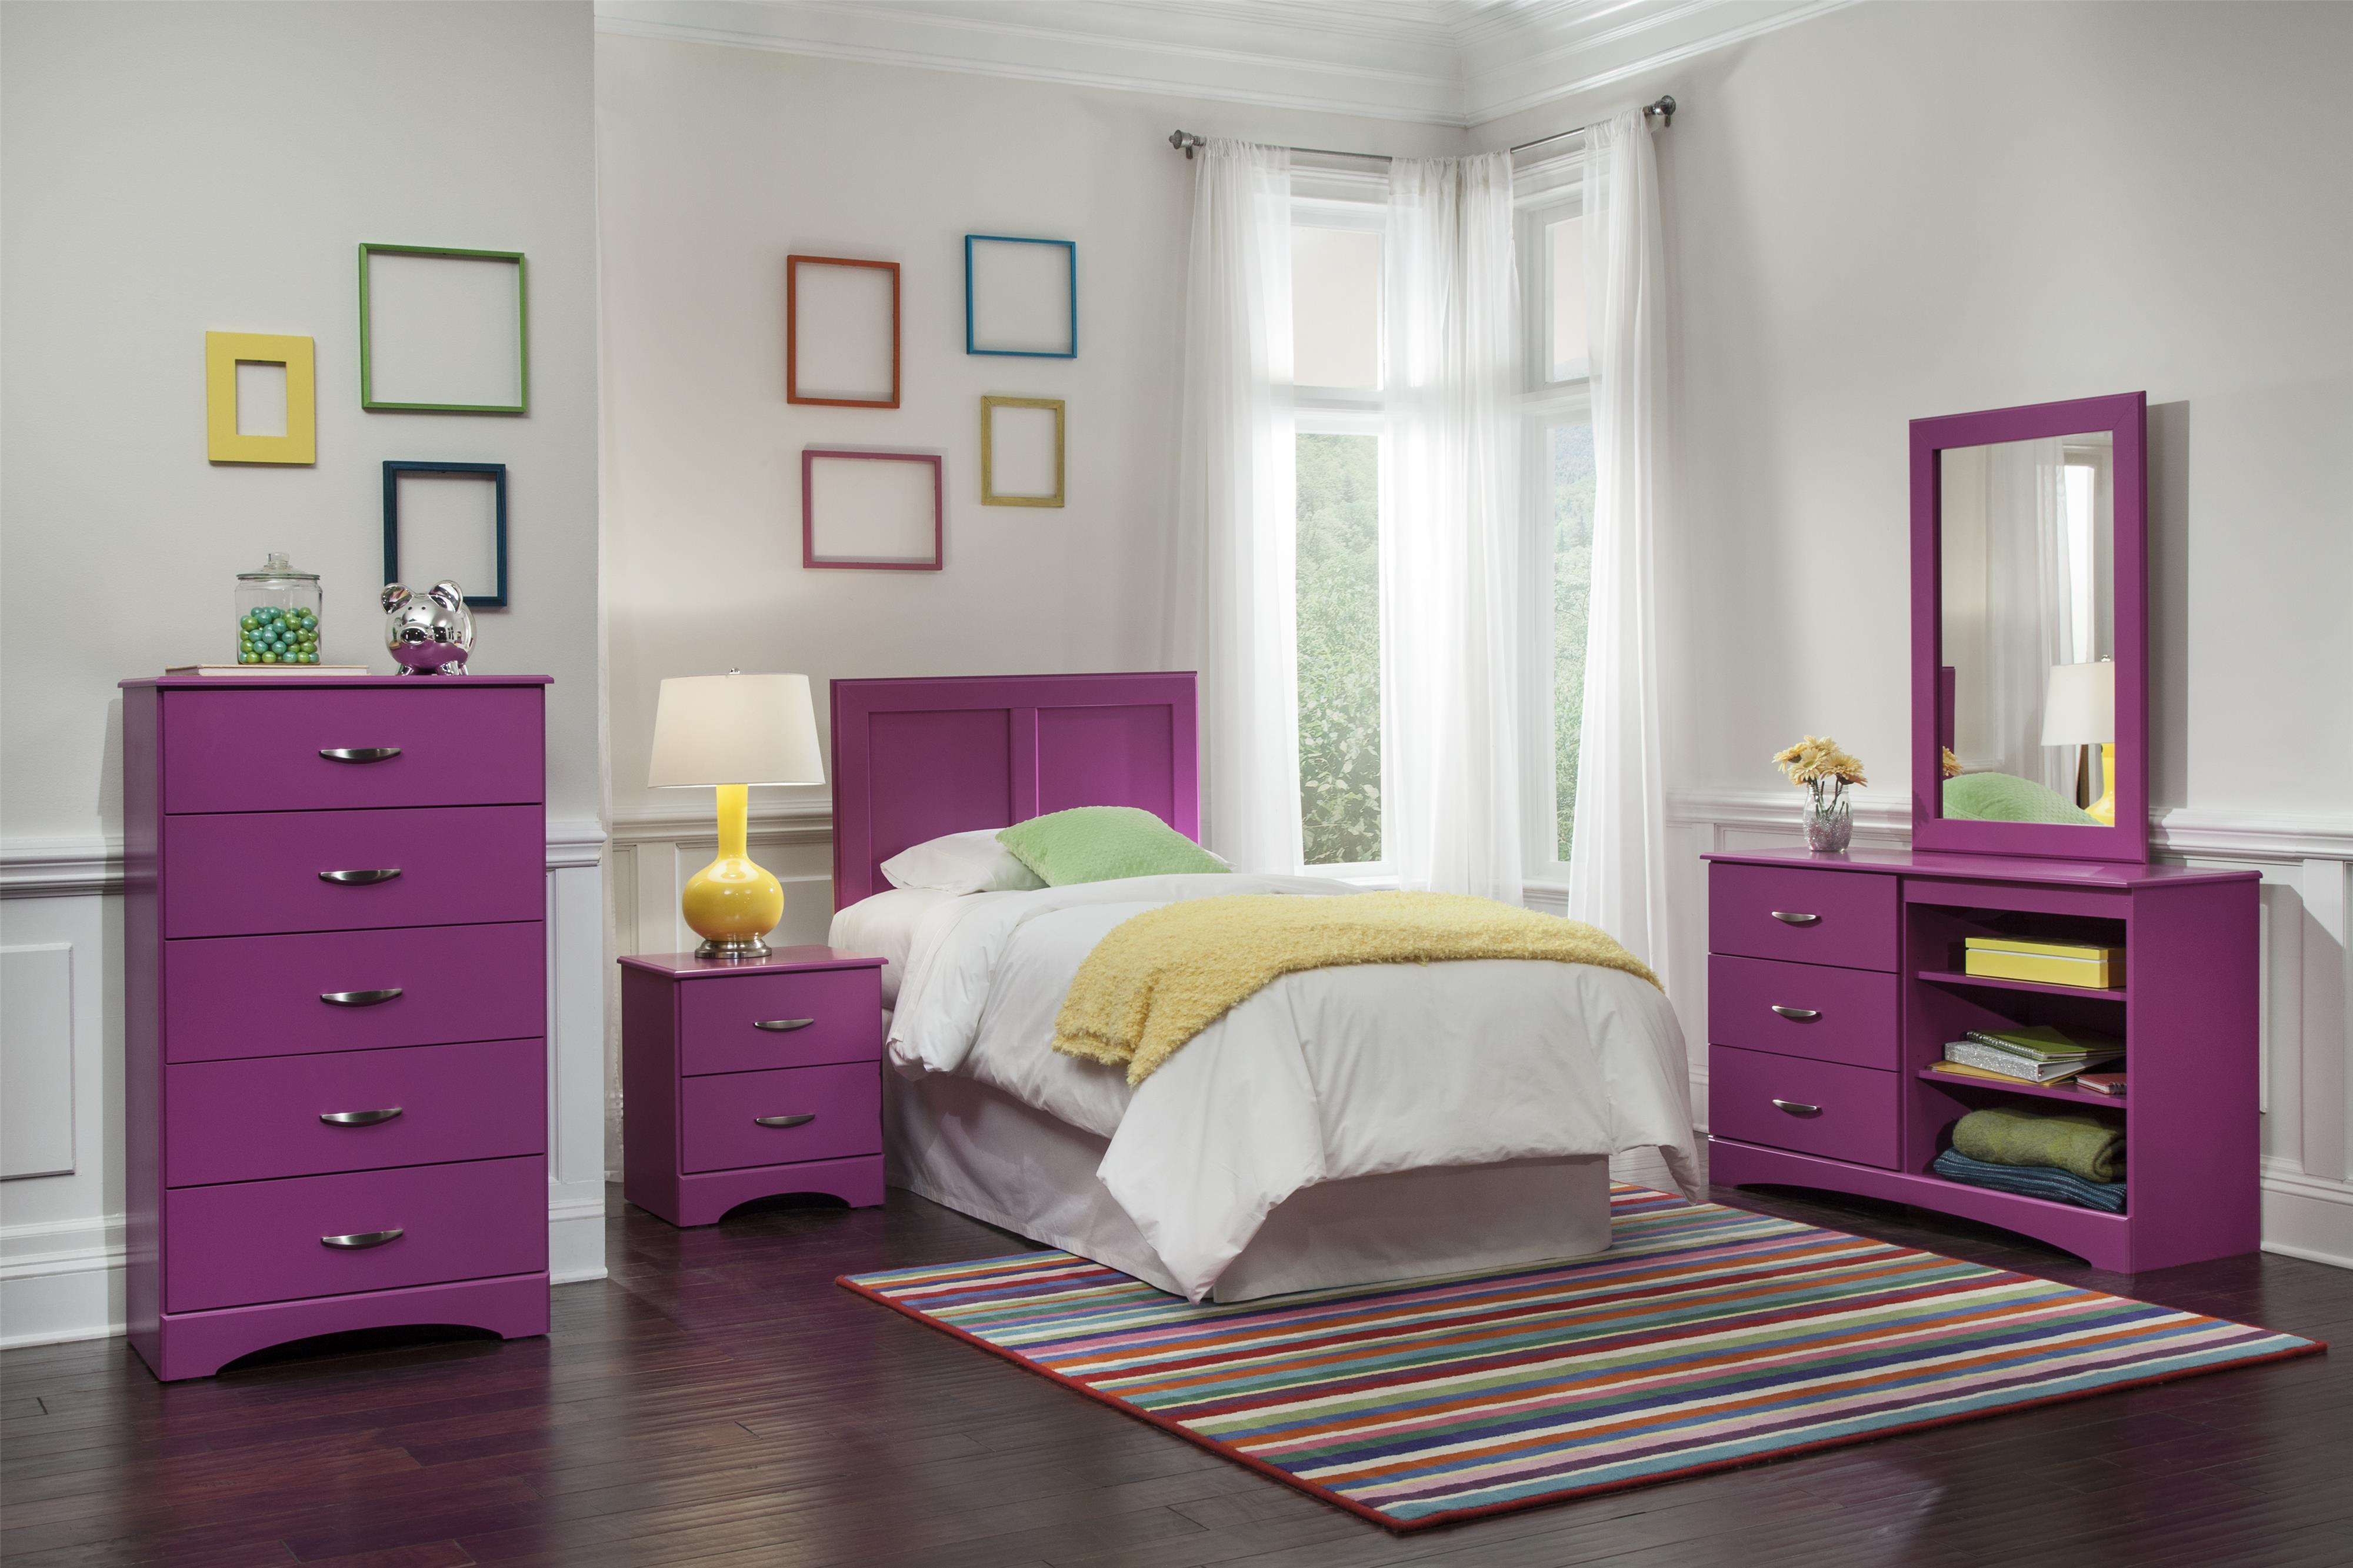 Kith Furniture 171 Raspberry Twin Bedroom Group - Item Number: 171 T Bedroom Group 1